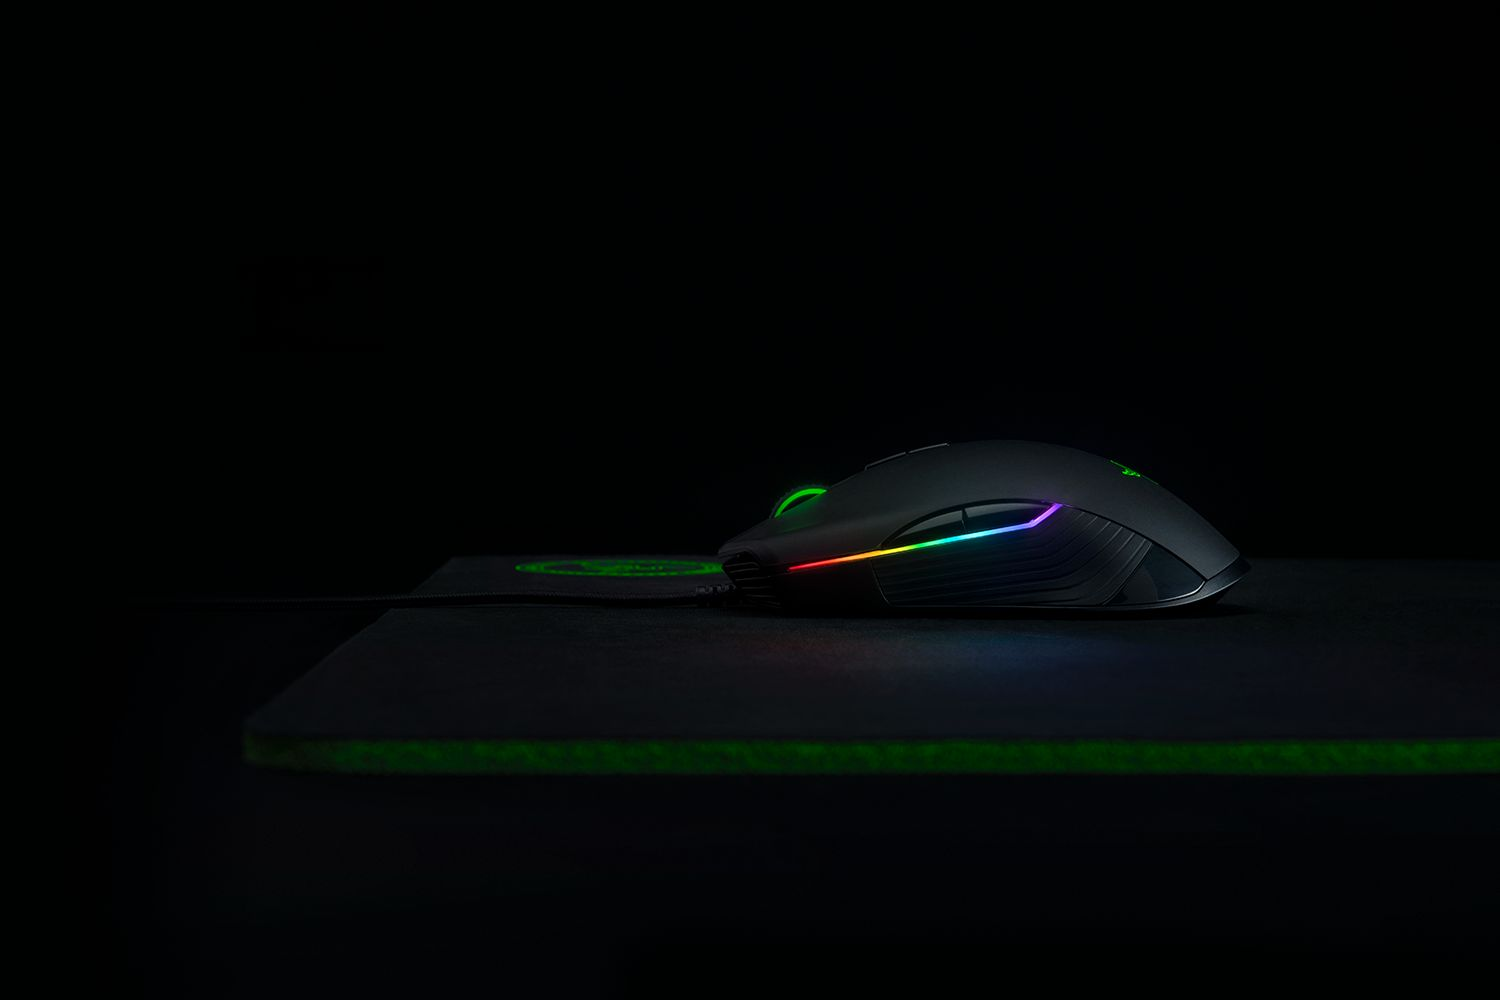 Chuột chơi game Razer Lancehead Tournament Edition Ambidextrous